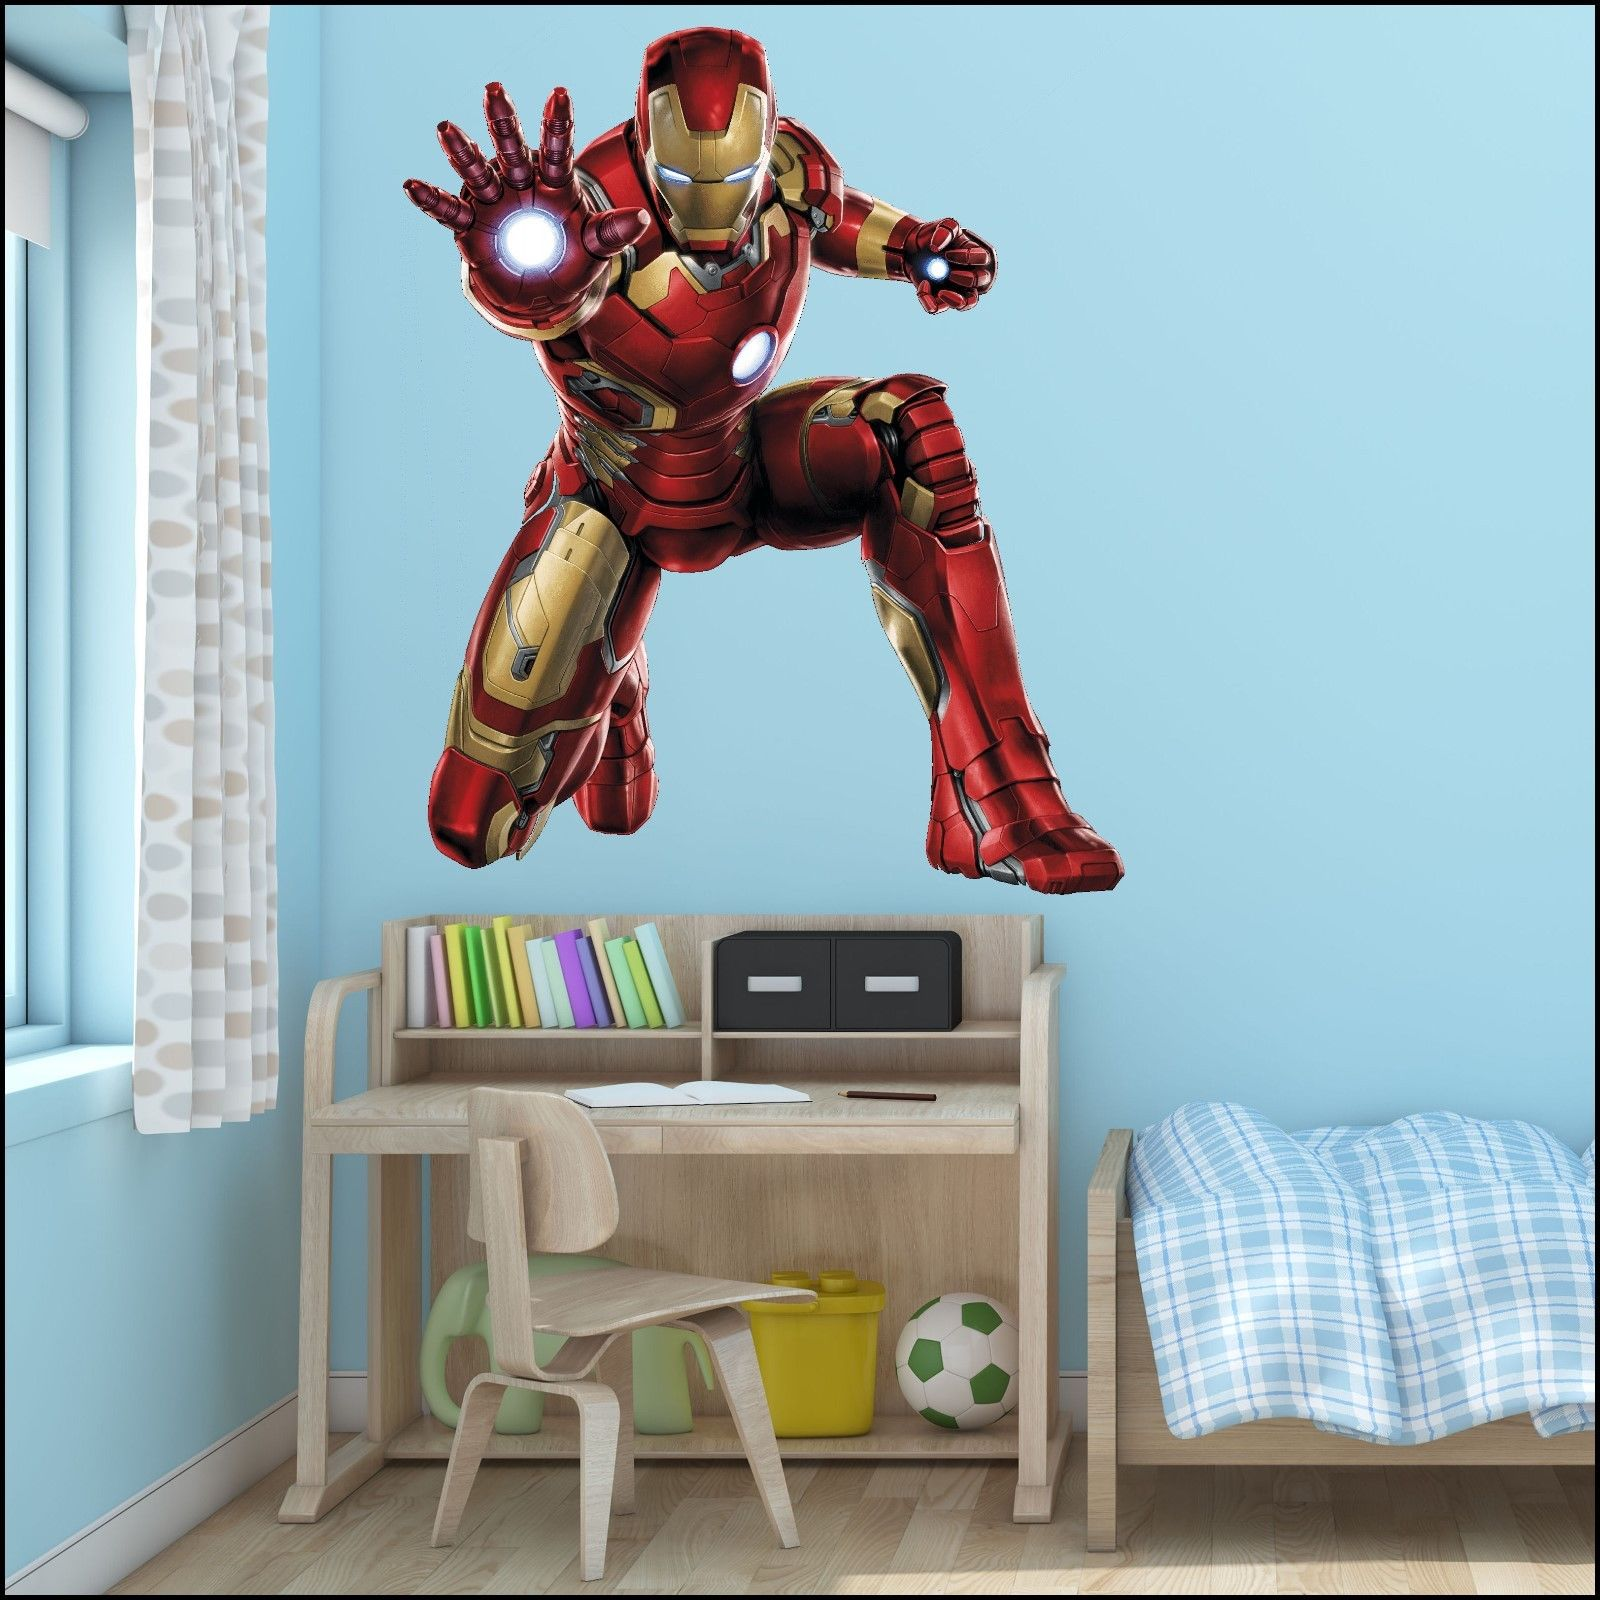 Large-Iron-Man-Avengers-Wall-Sticker-Mural-Art-7-sizes-to ...